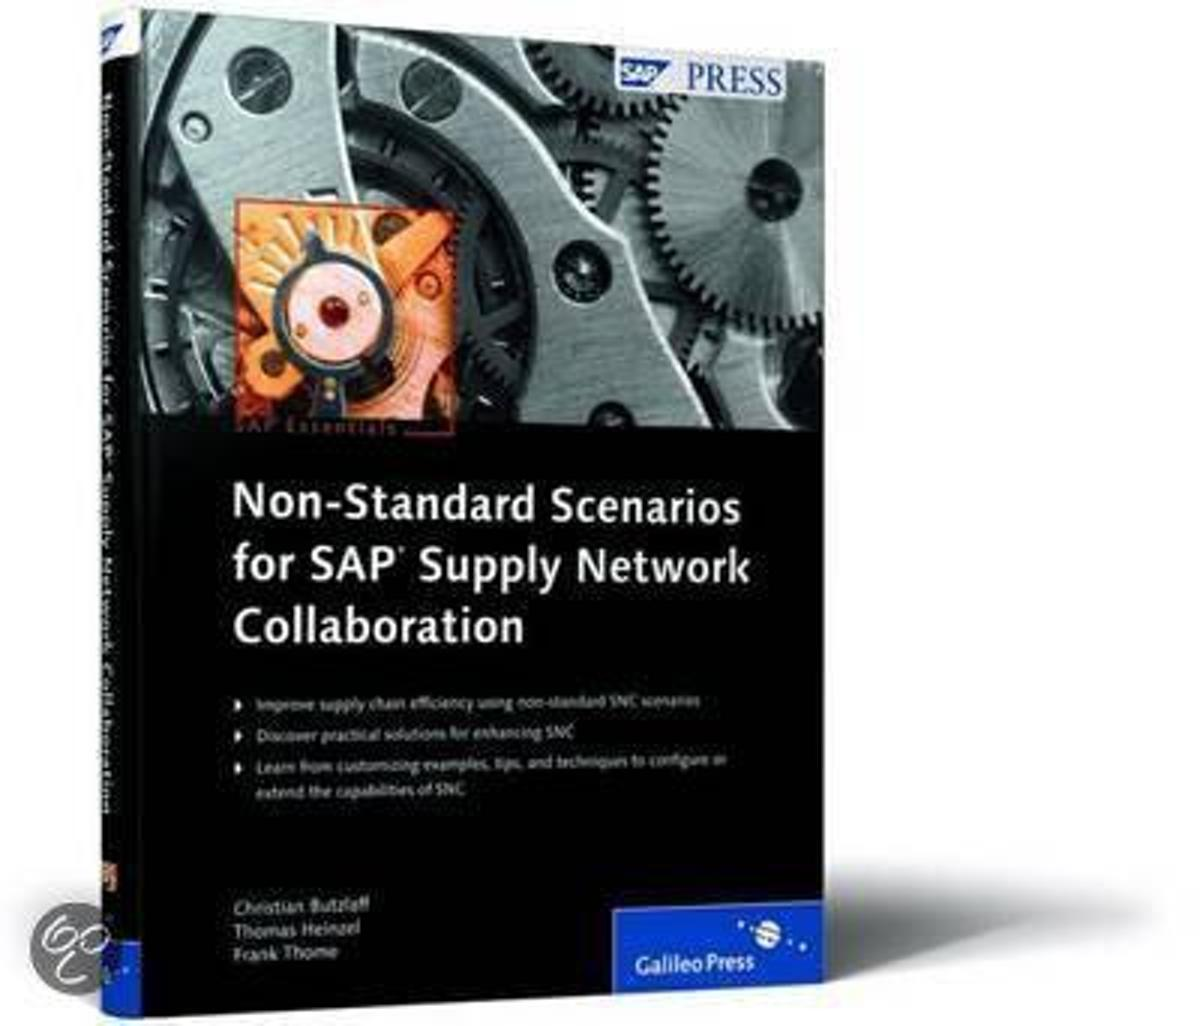 SAP Non-Standard Scenarios for Supply Network Collaboration